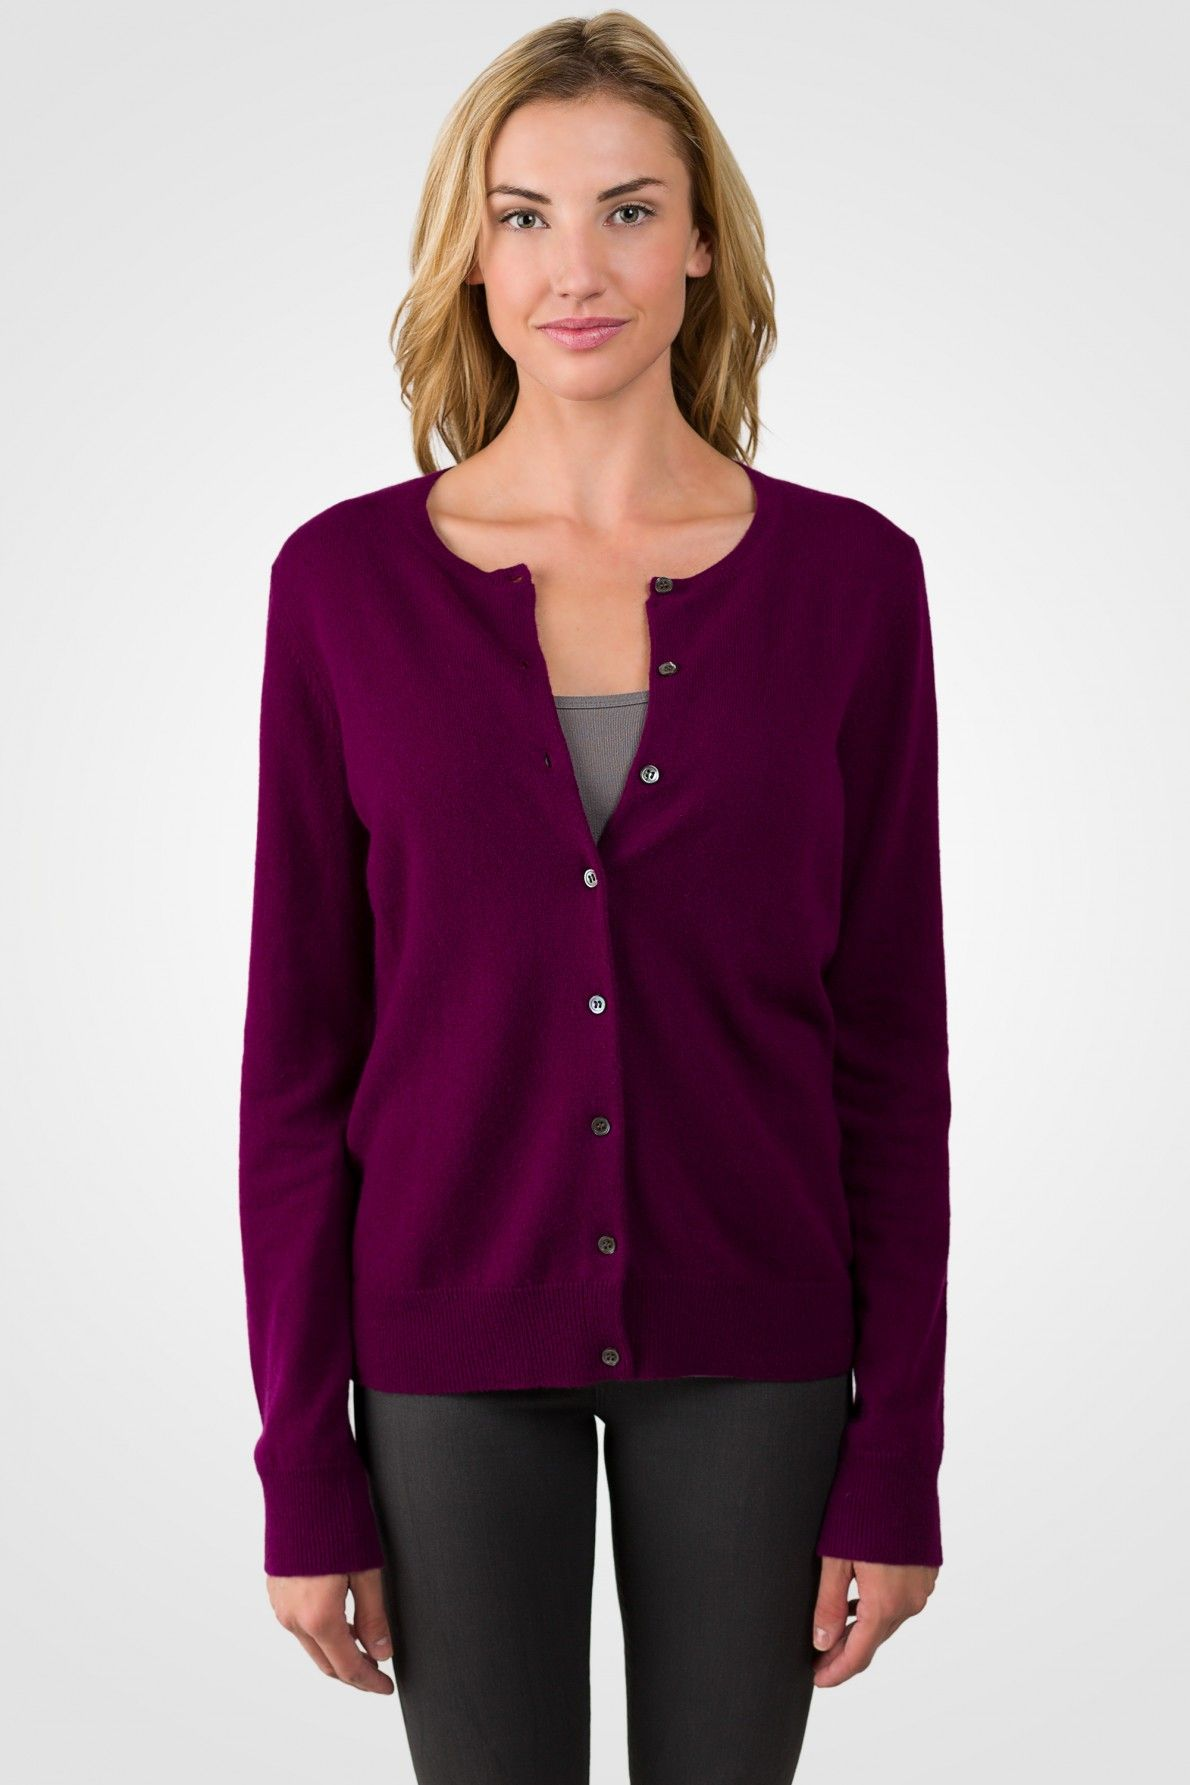 Plum Cashmere Button Front Cardigan Sweater | Cashmere